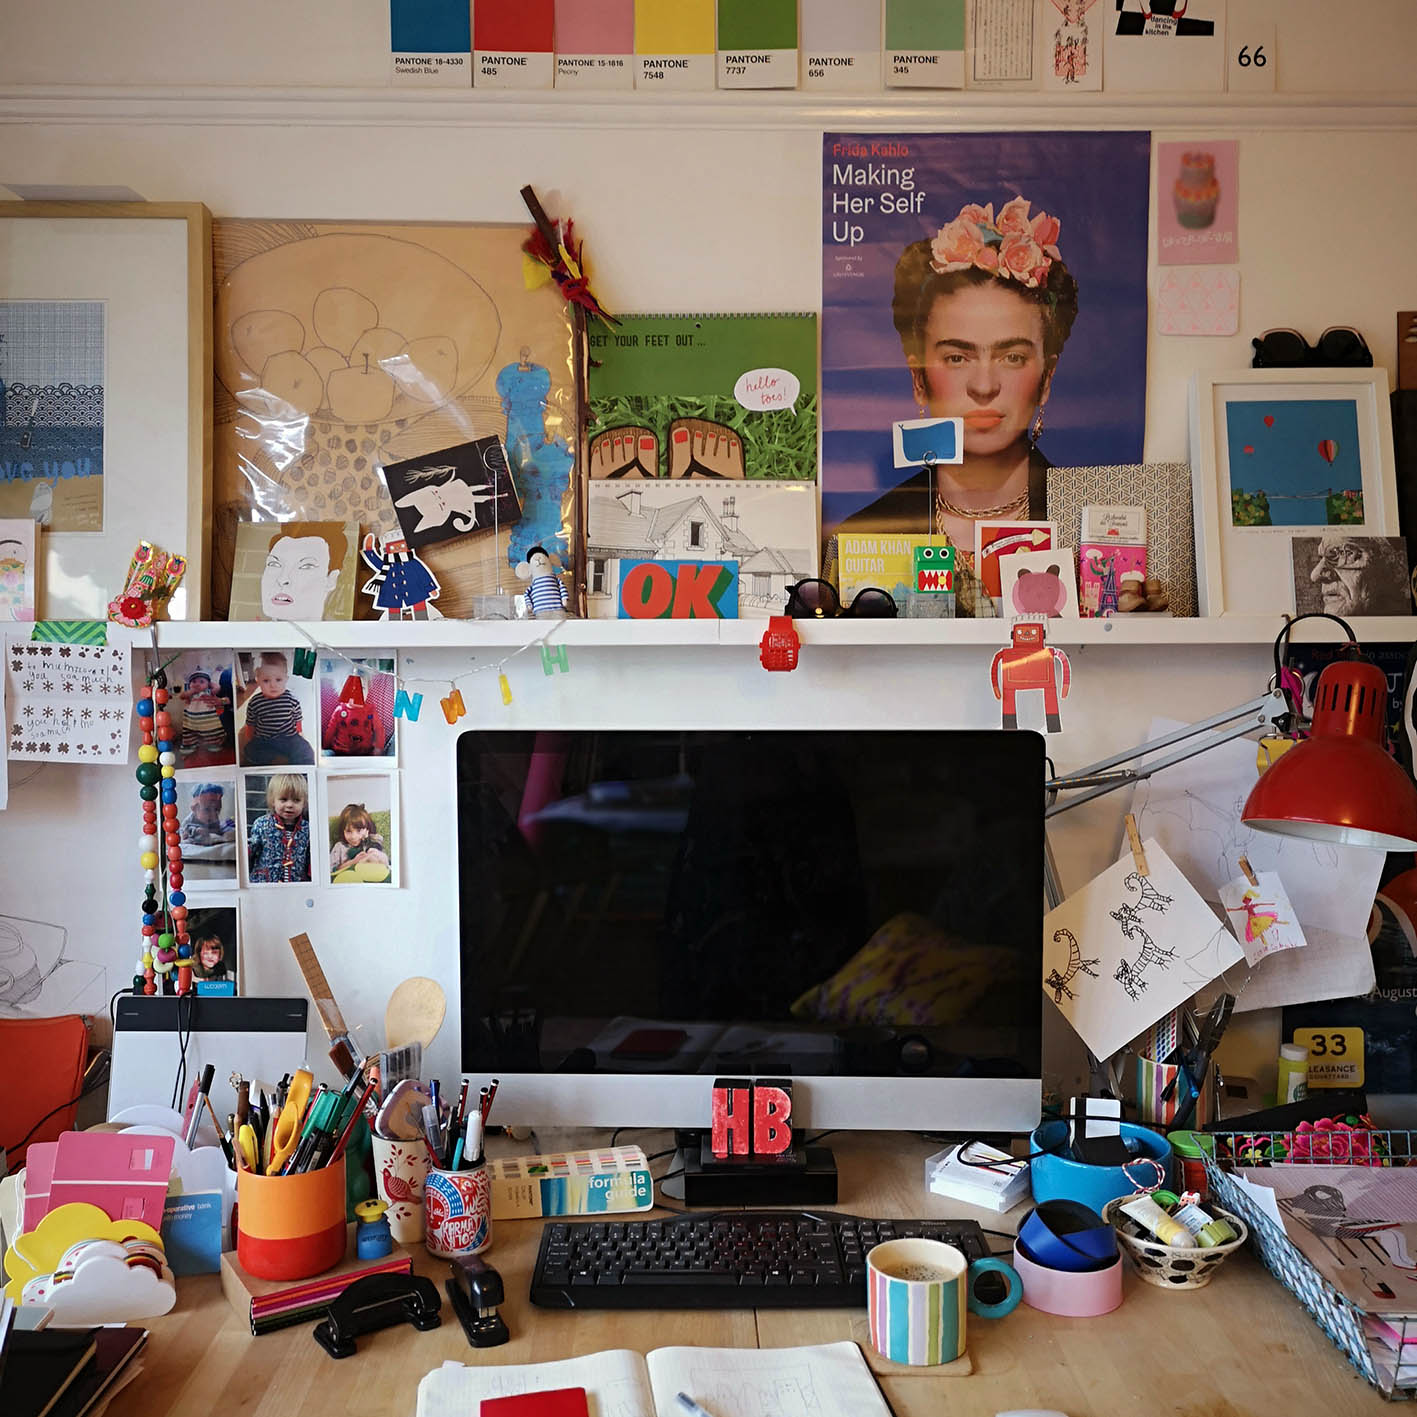 Behind Hannah's monitor is a plethora of colourful inspiration, as well pens, brushes, sketchbooks and other tools of the trade!